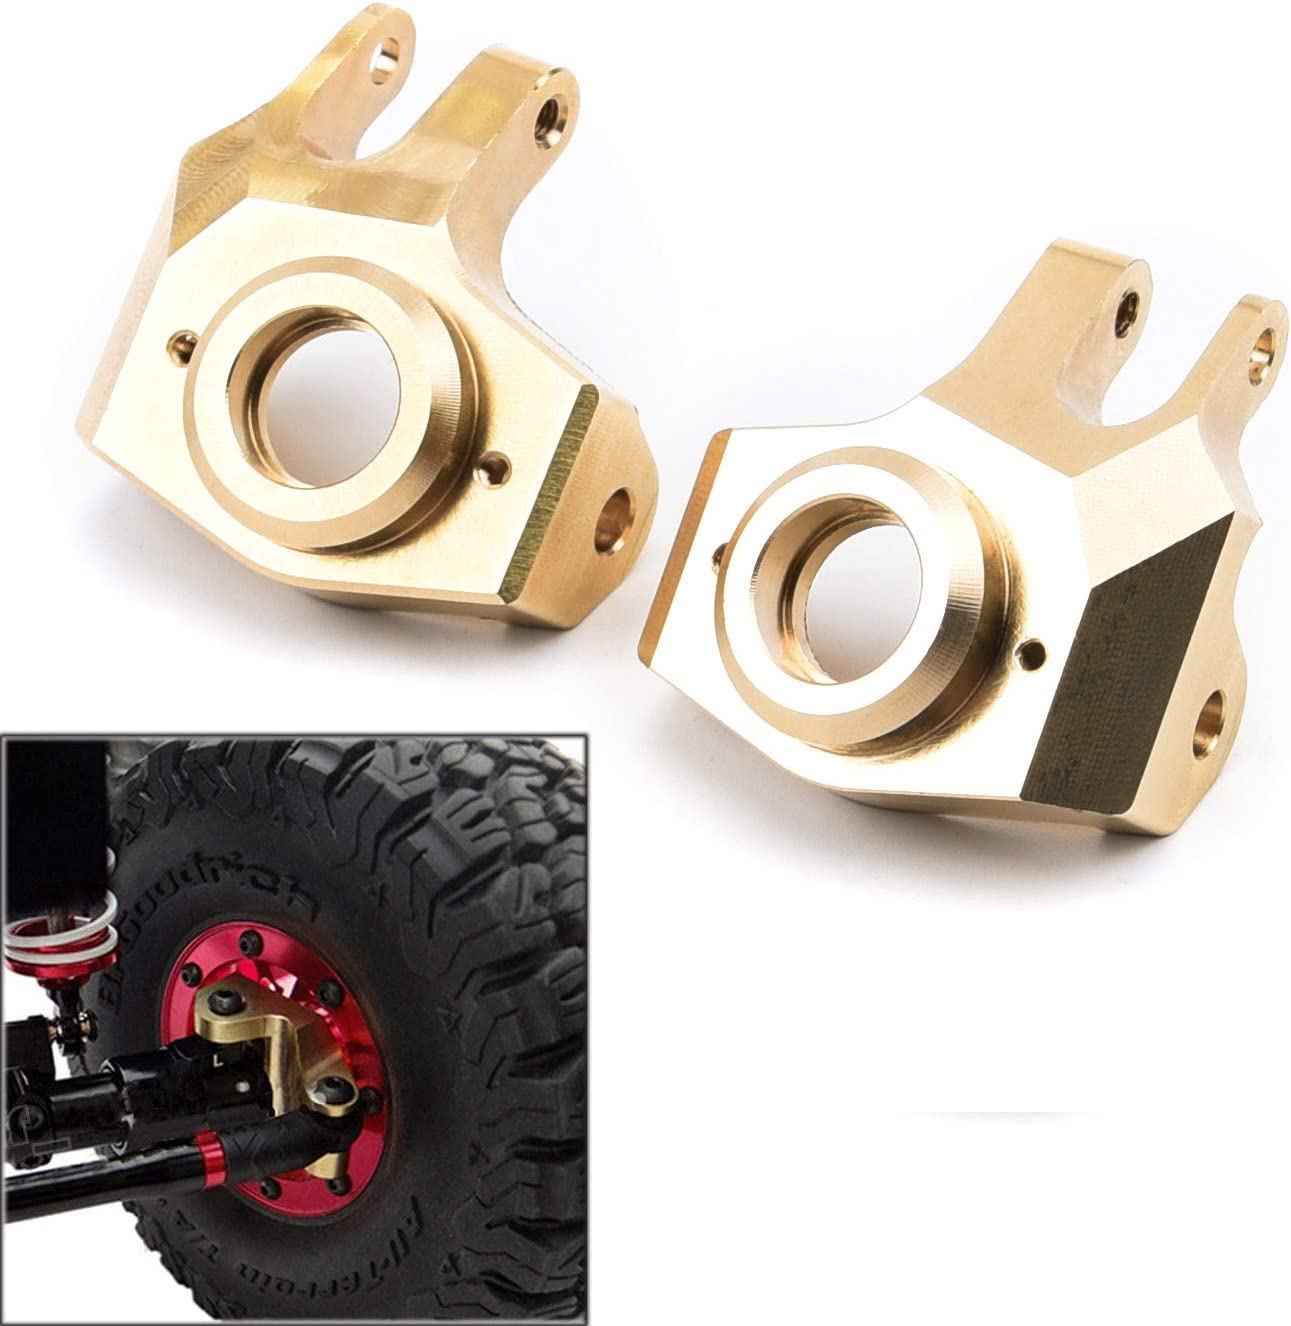 FPVKing Front Steering Knuckle Heavy Duty Metal Brass for 1//10 RC Crawler Axial SCX10 II 90046 Upgrade Parts